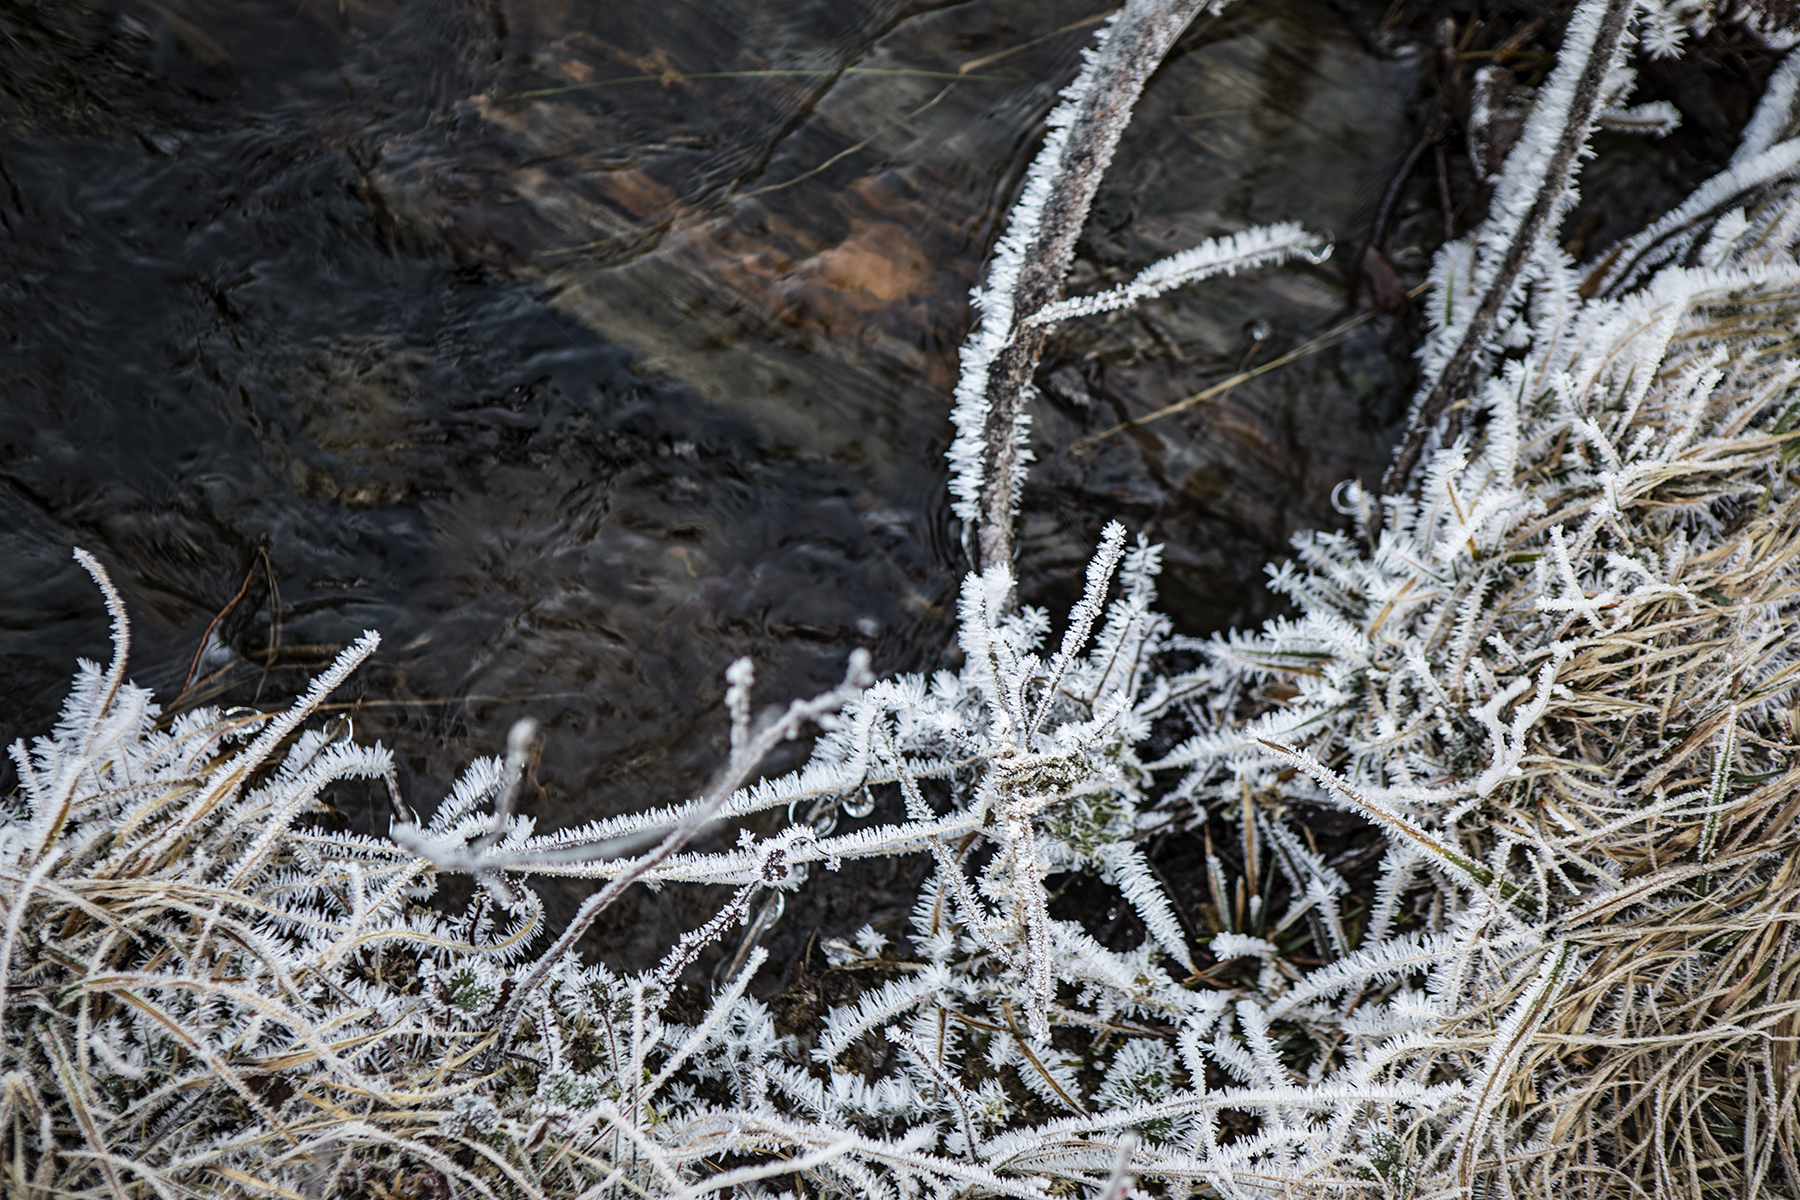 Really cool ice crystals on the creekside vegetation.